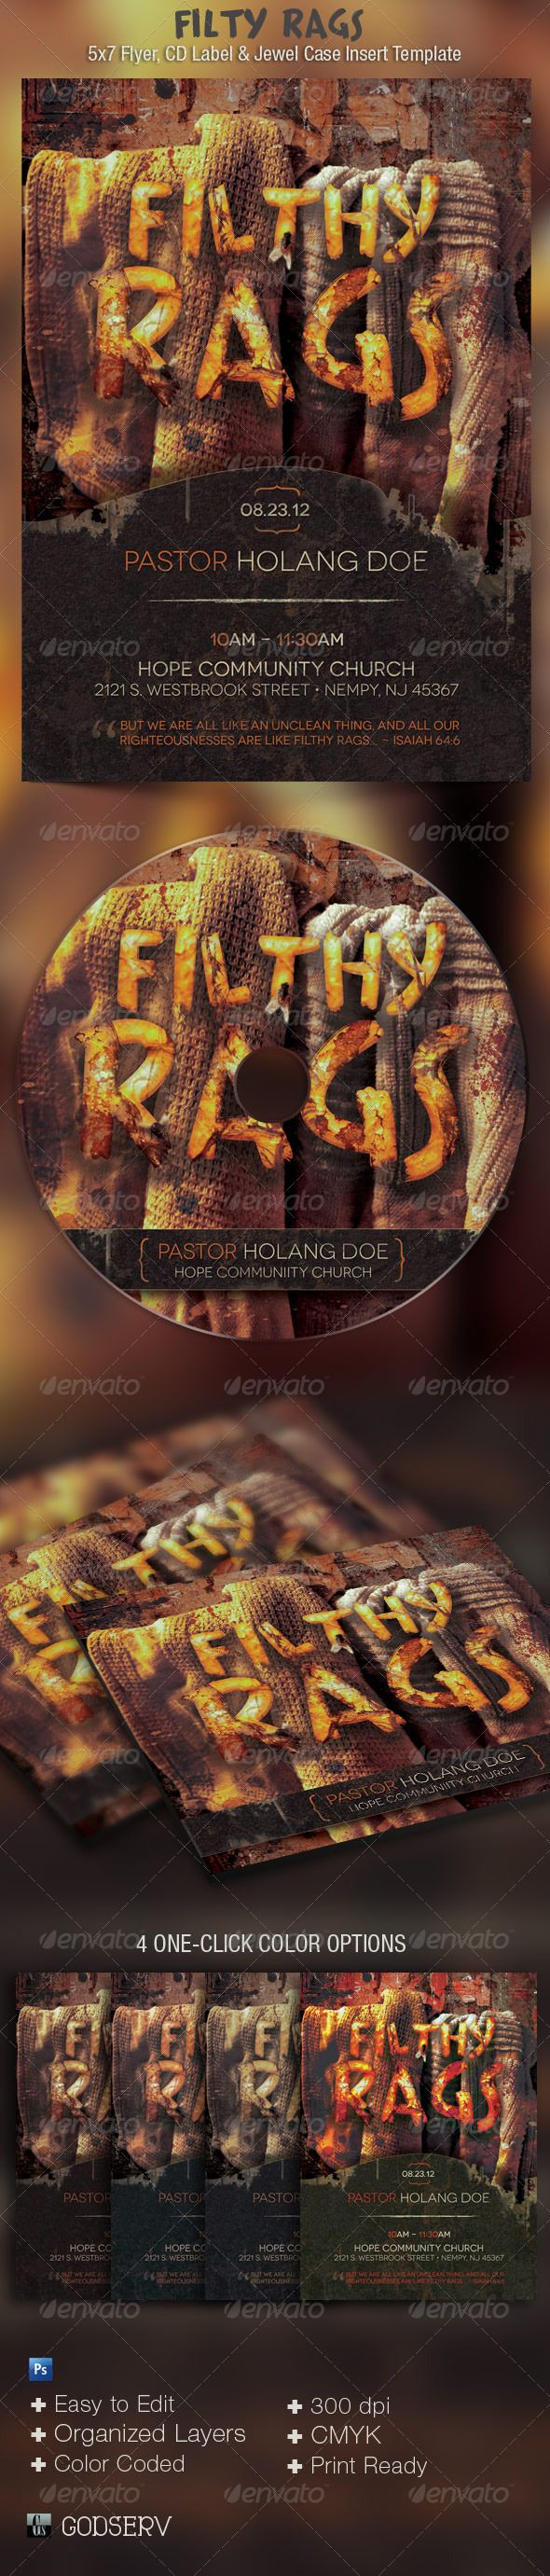 Filthy Rags Church Flyer and CD Template - The Filthy Rags Flyer and CD Template is sold exclusively on graphicriver.net and is geared towards usage for church sermon series. It's grundgy design is perfect for any dark subject of the soul etc. Price: $7.00